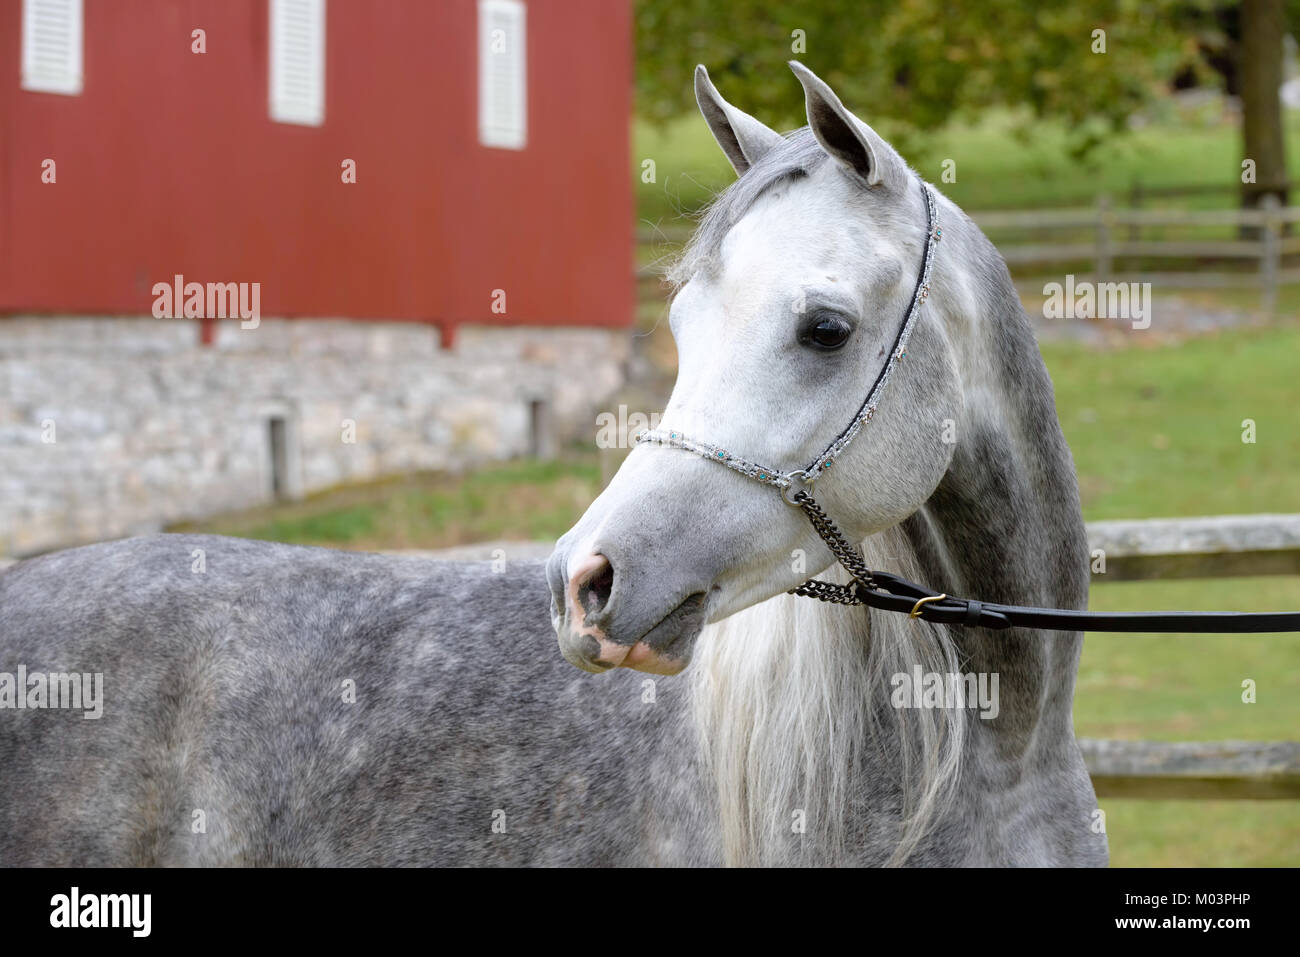 Arabian horse in close up, portrait of a dapple gray outdoors looking away in a farm setting. - Stock Image